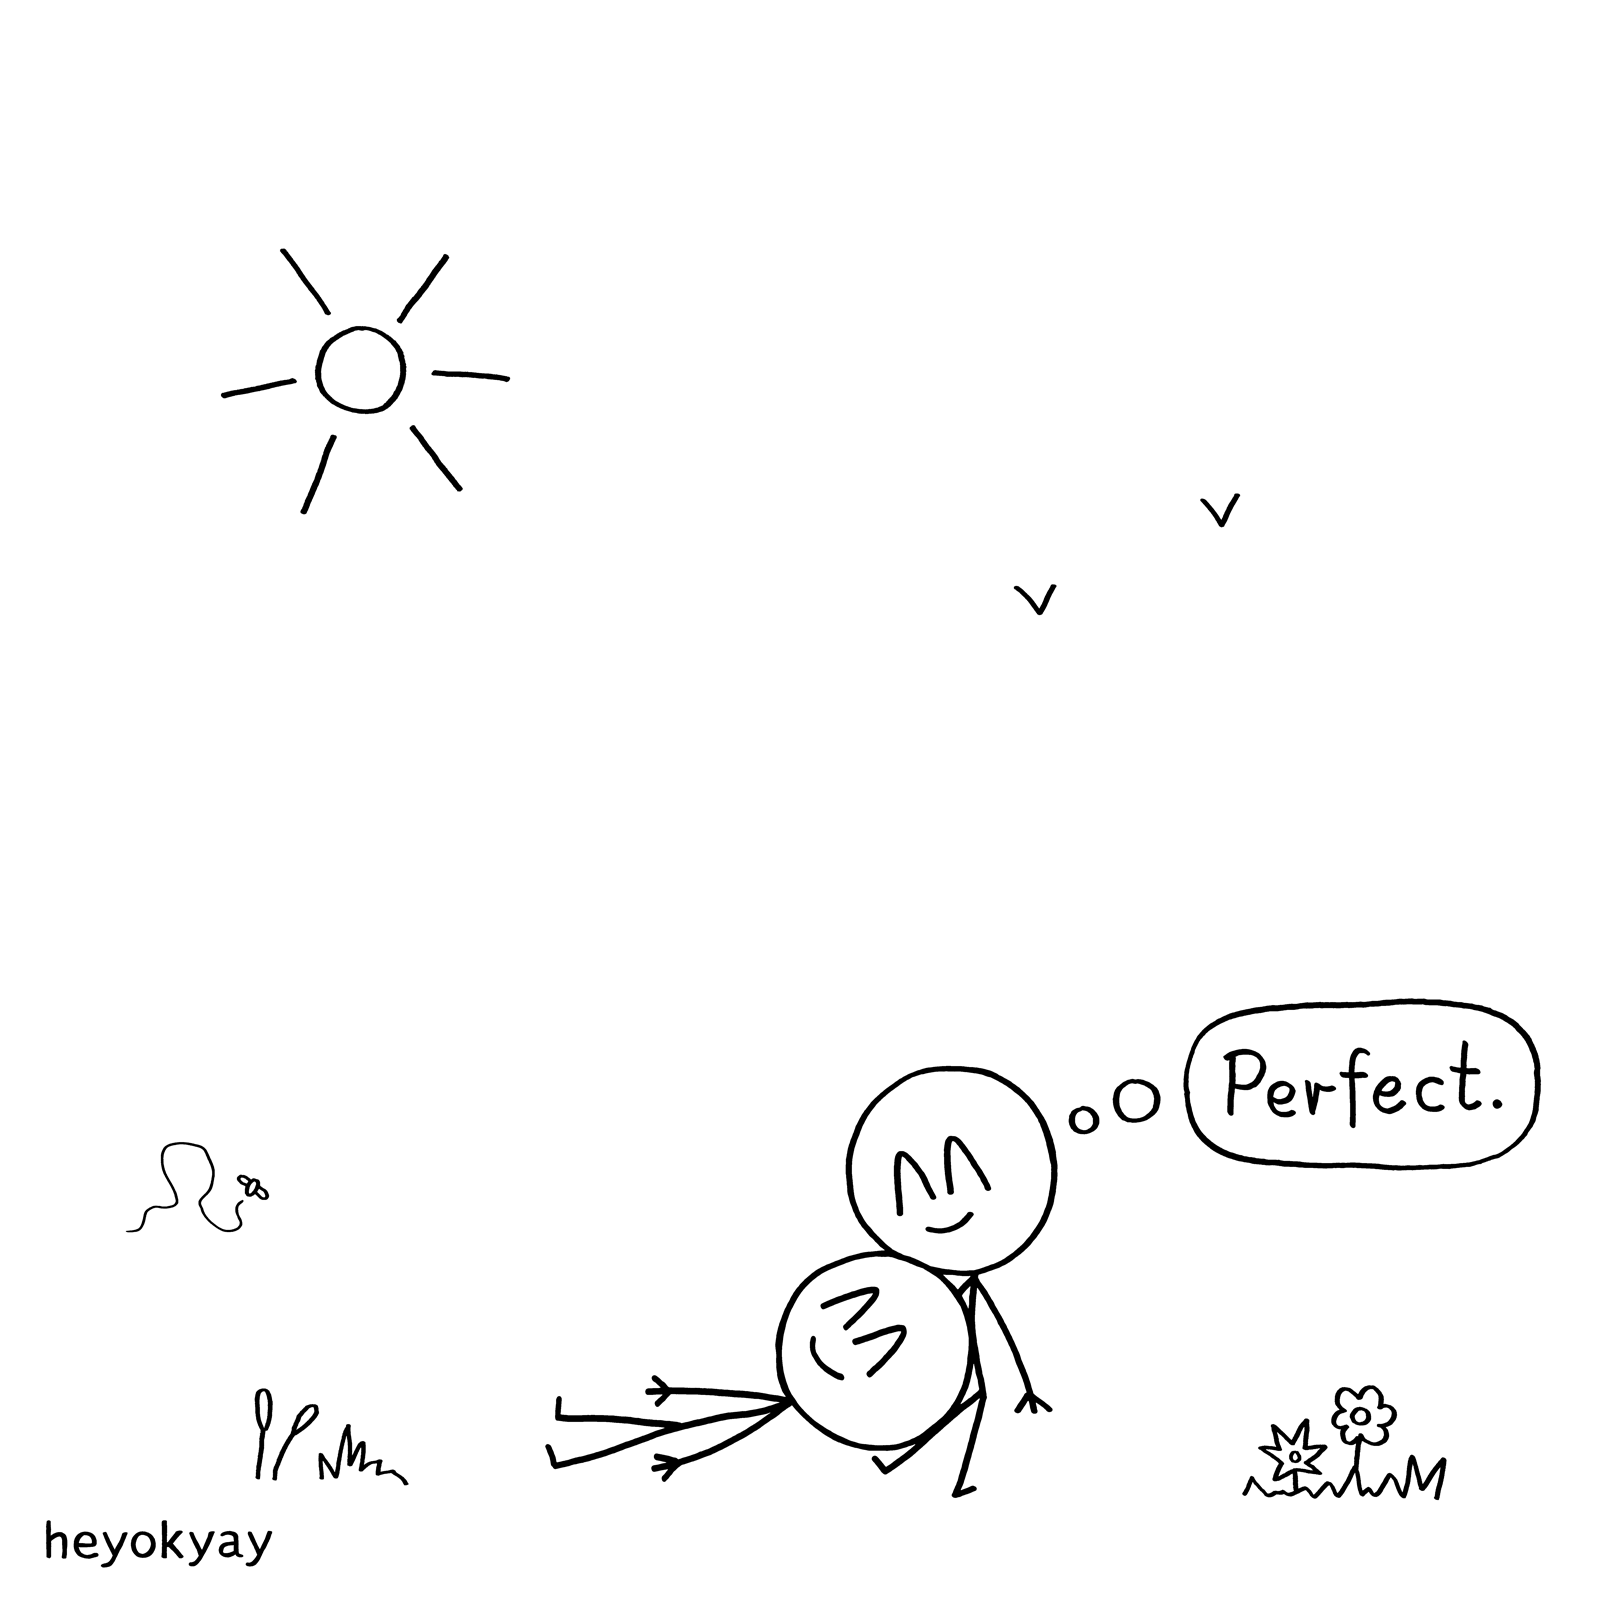 Perfect Summer heyokyay comic